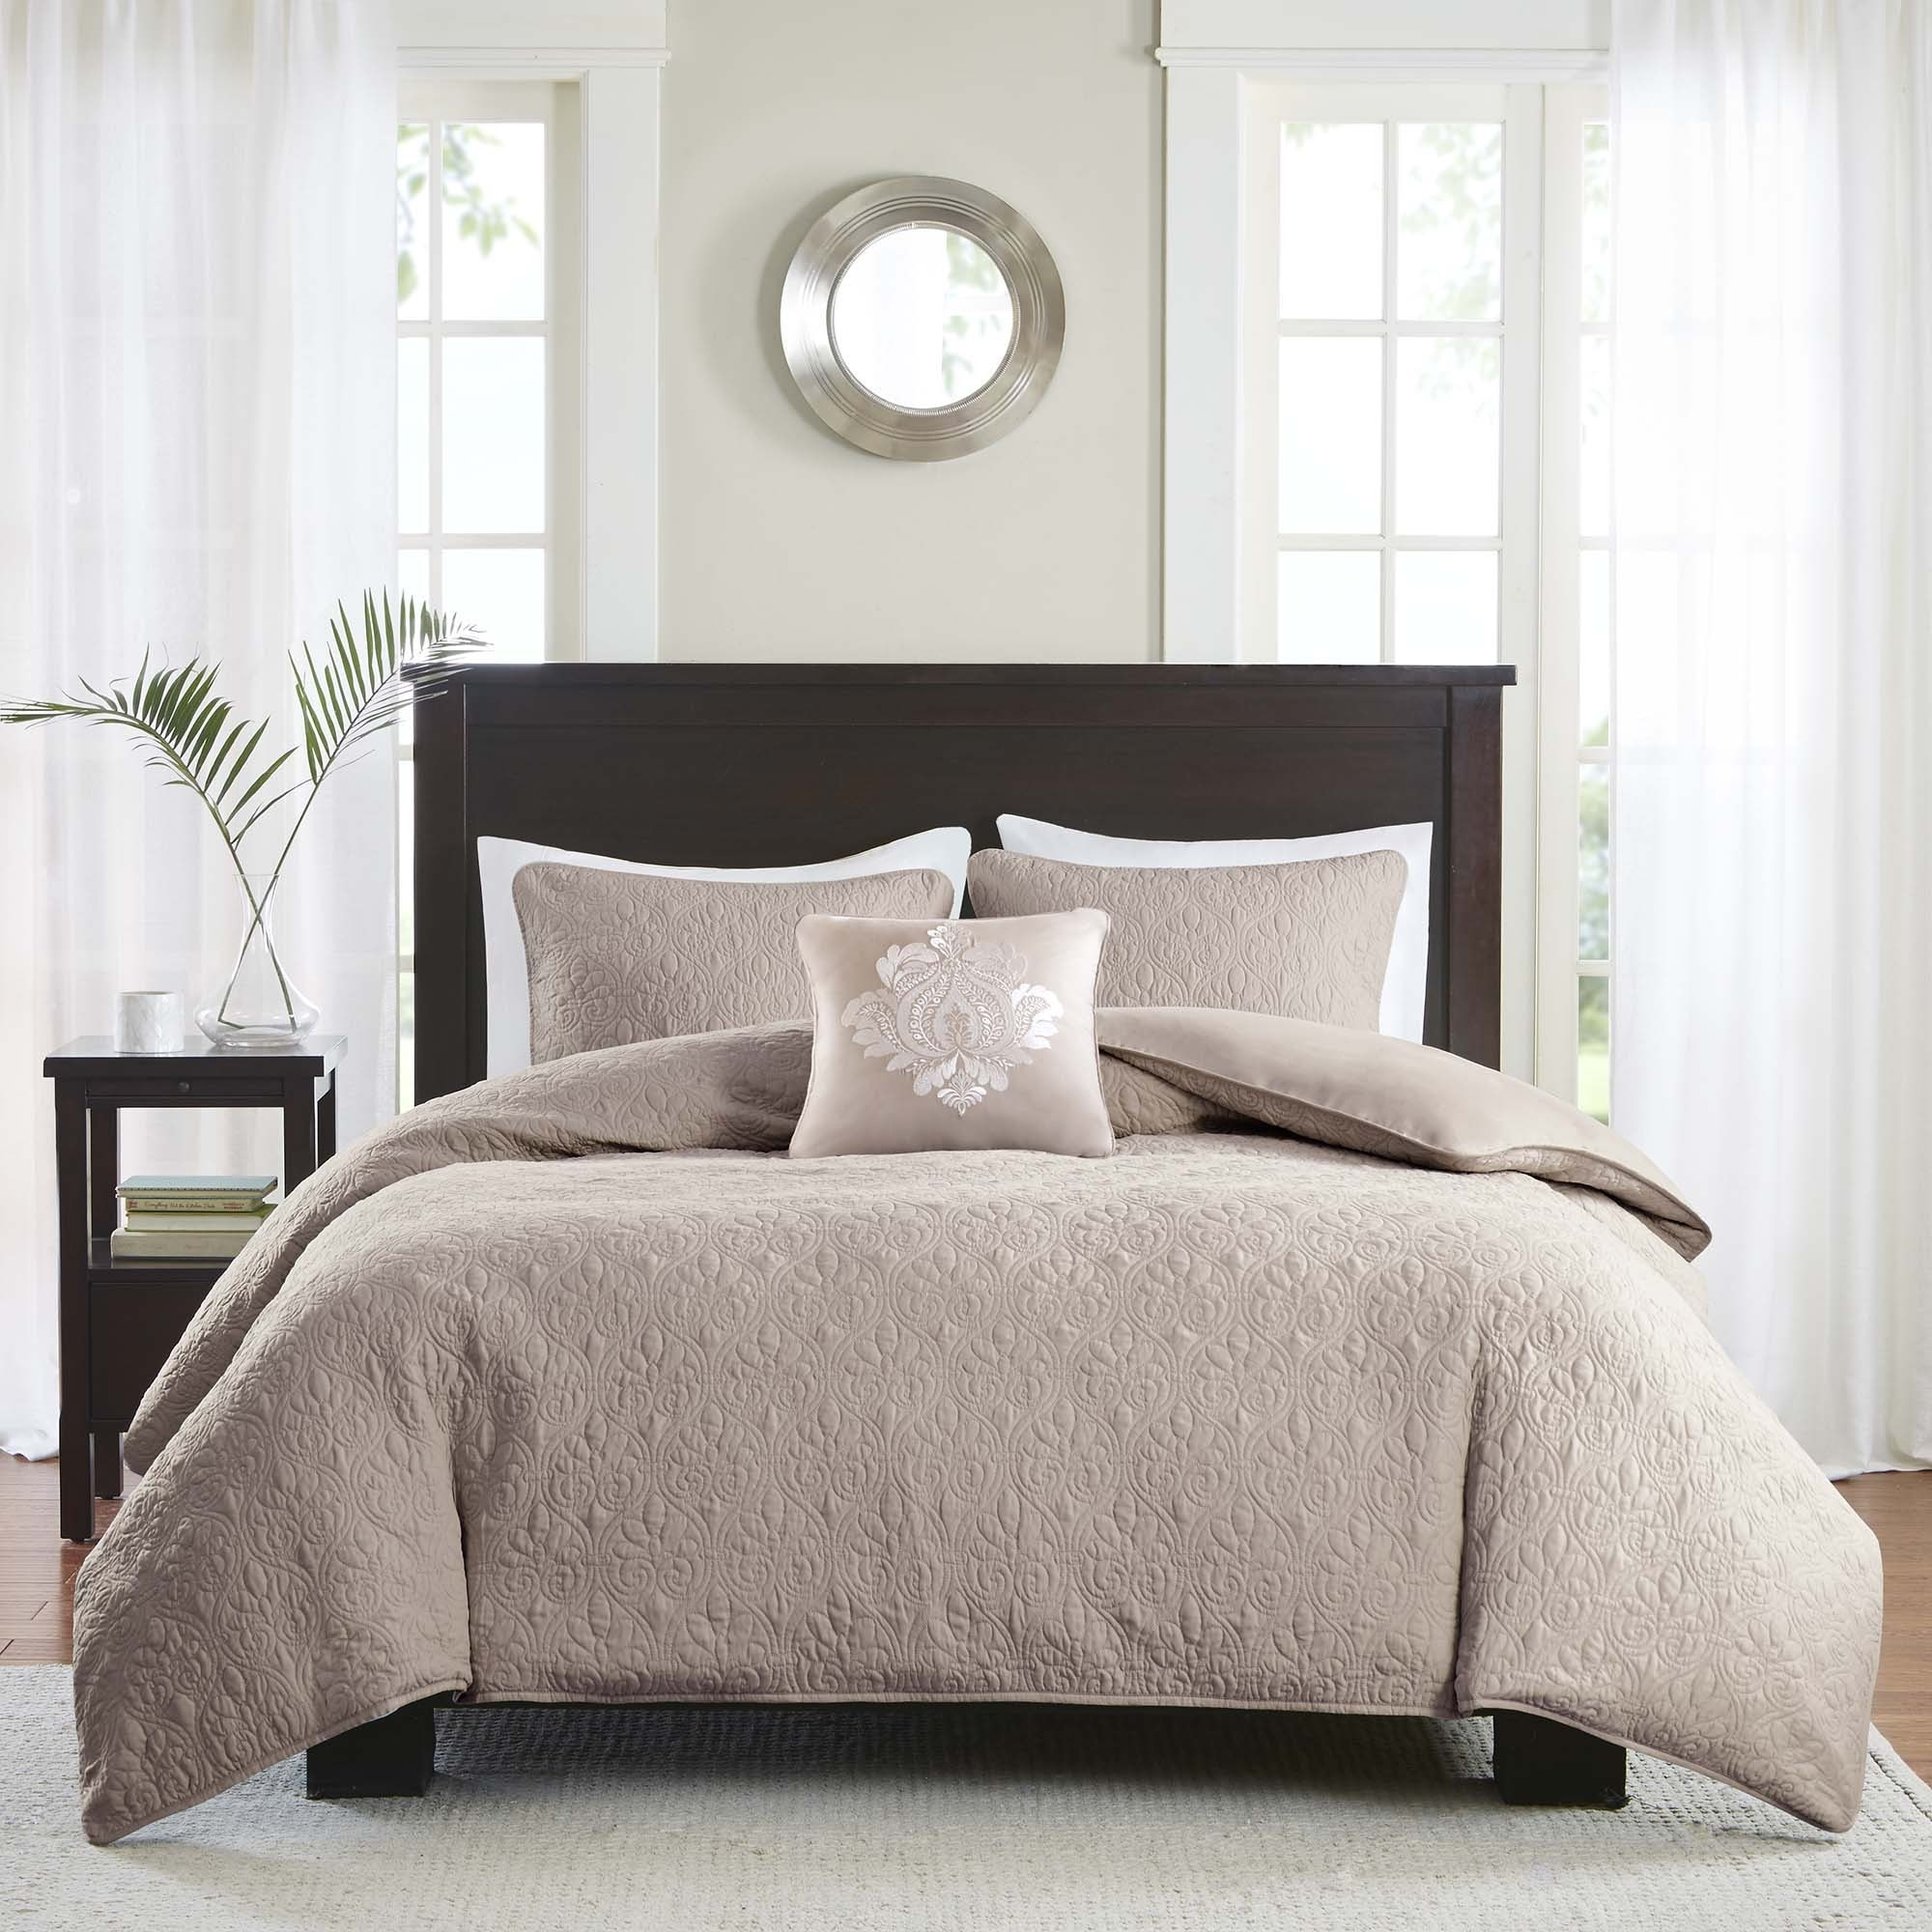 Madison Park Mansfield 2 In 1 Khaki Duvet Cover/Coverlet Set   Free  Shipping Today   Overstock.com   18524830